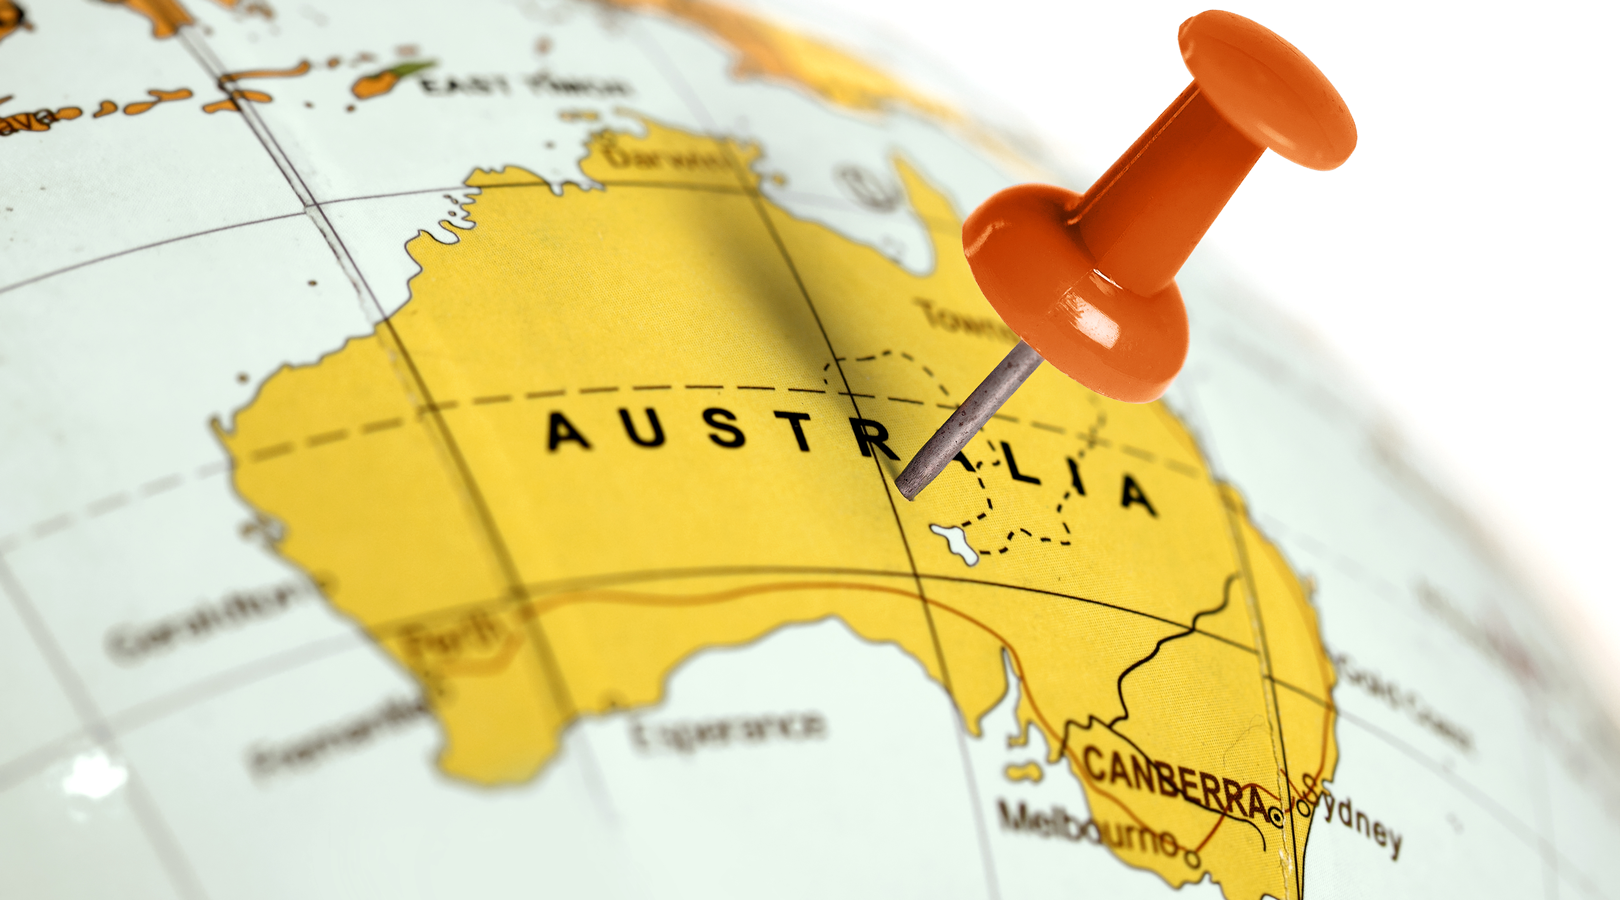 What are the last posting dates to Australia for Christmas 2020?